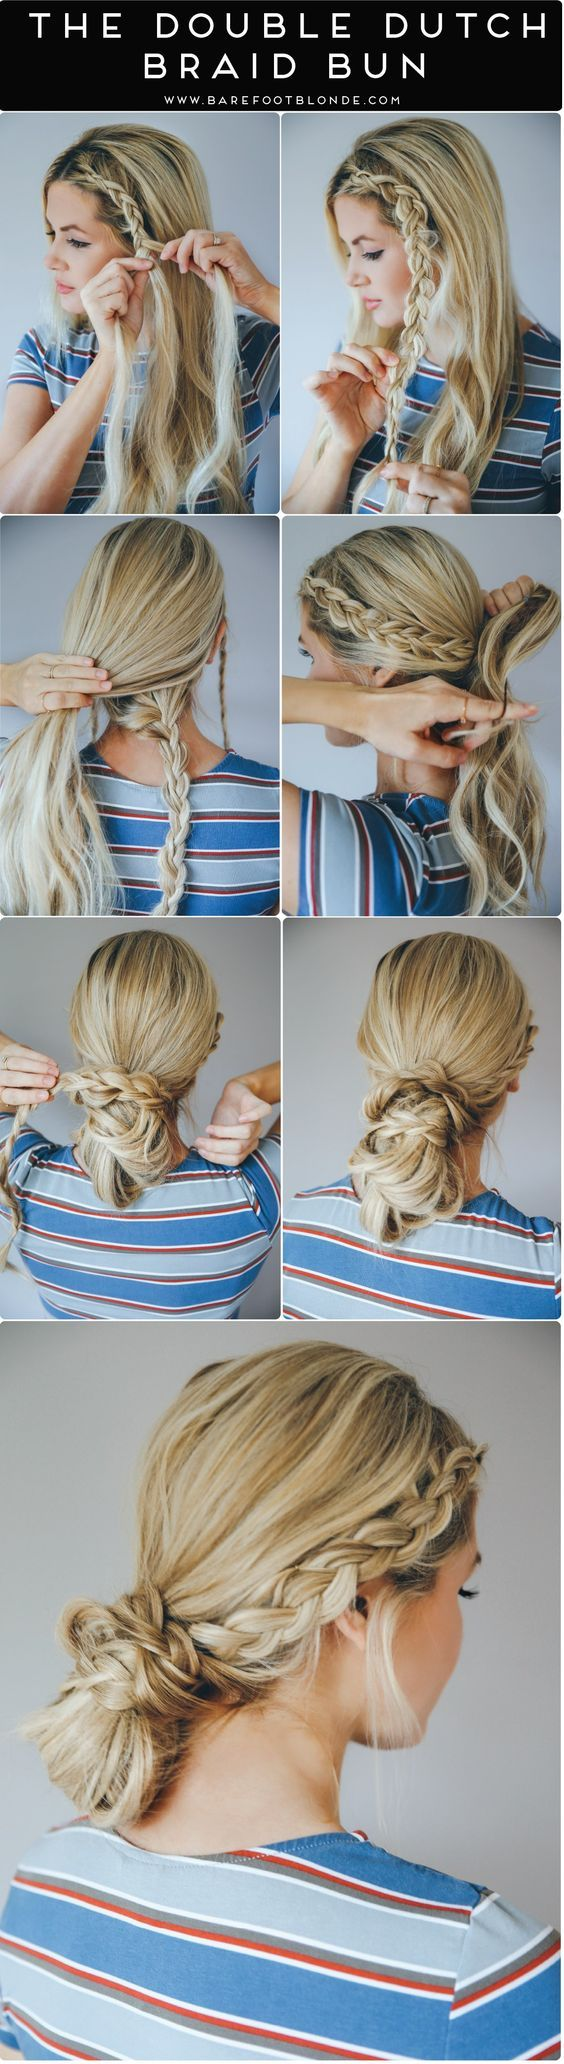 Braided hairstyle ideas for mebeautify pinterest braid